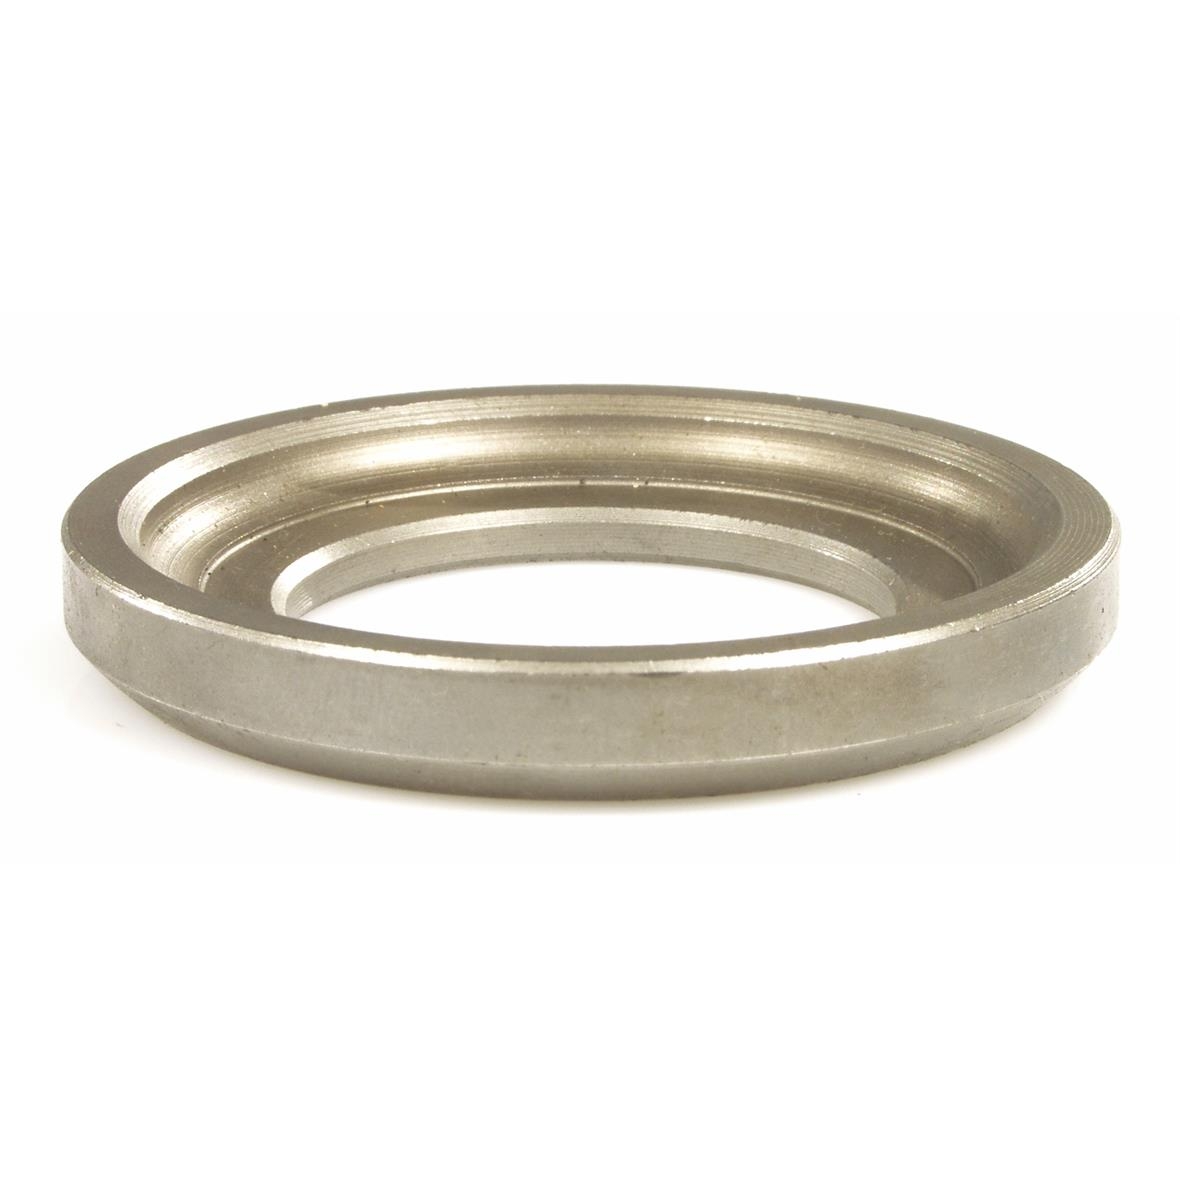 Product Image for 'Bearing Shell steering head bearing frame lowerTitle'